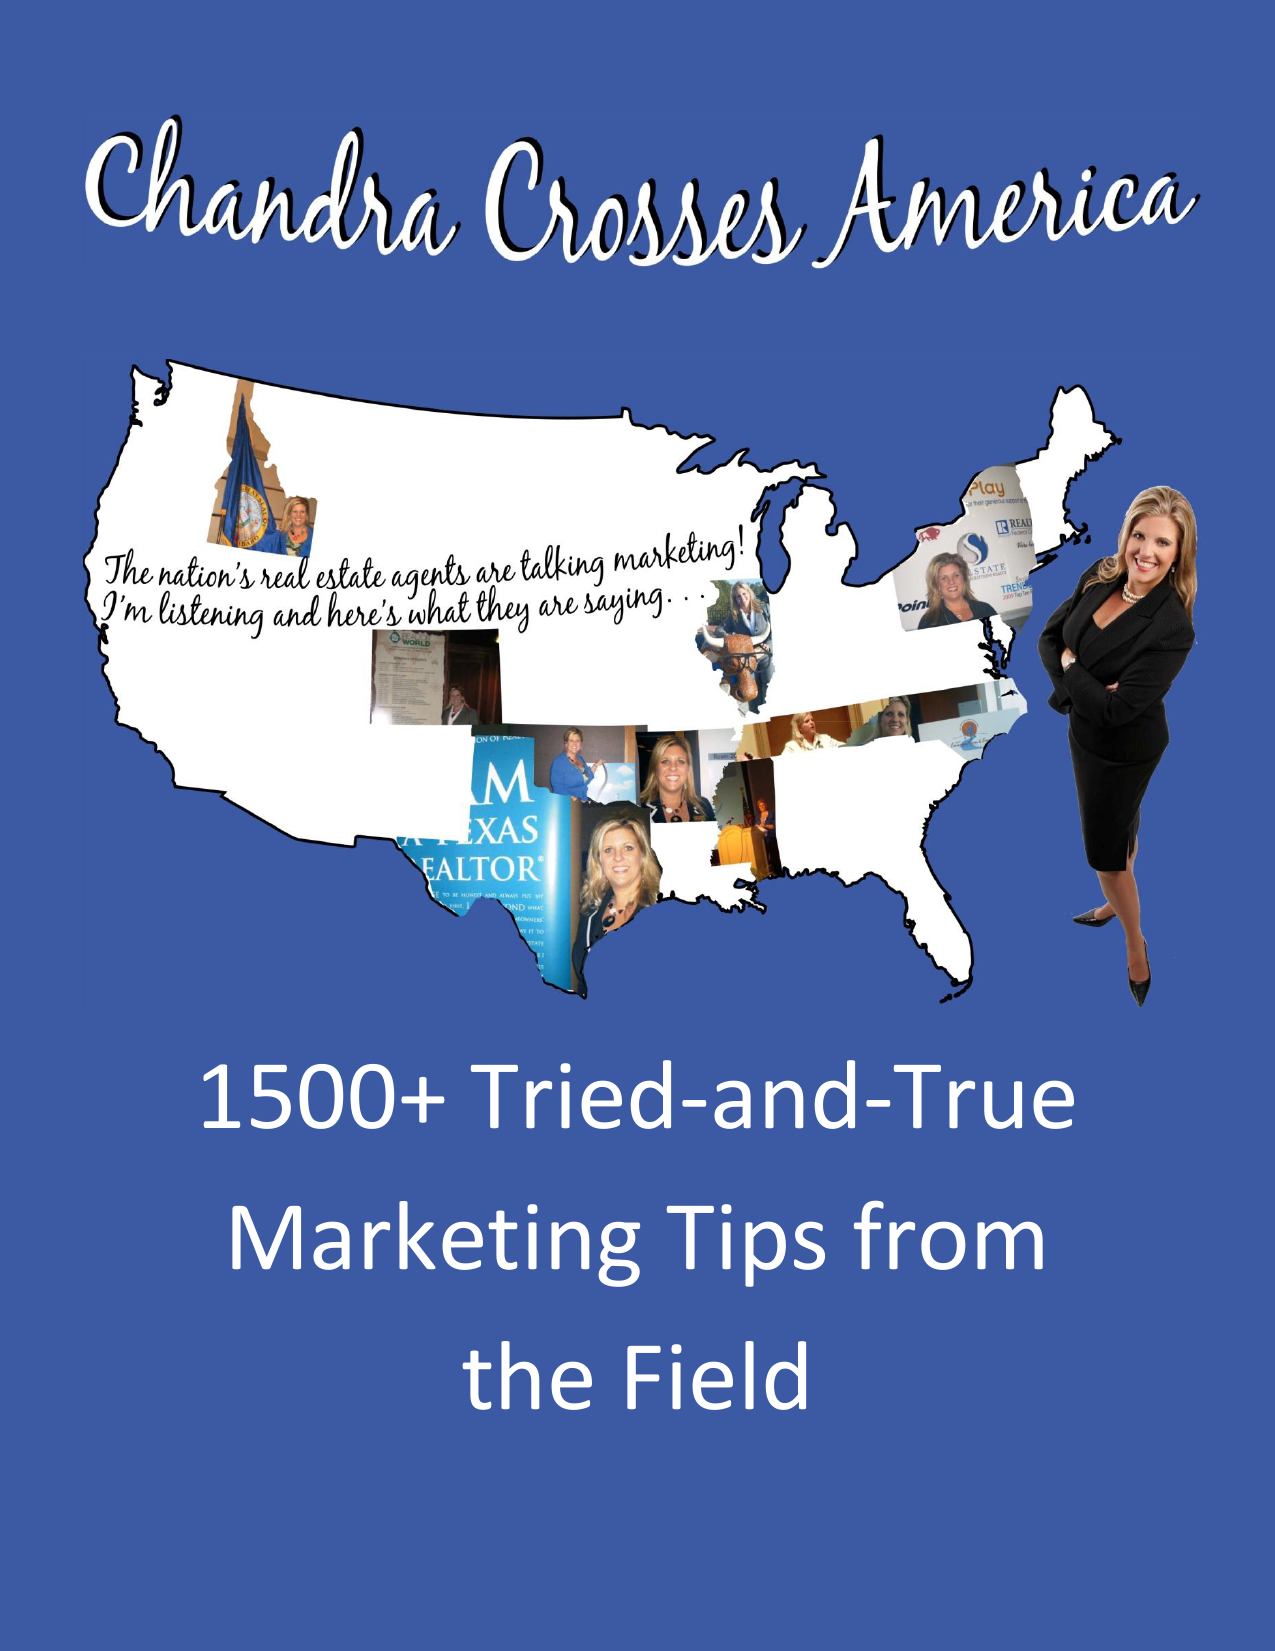 1500+ Tried-and-True Marketing Tips from the Field